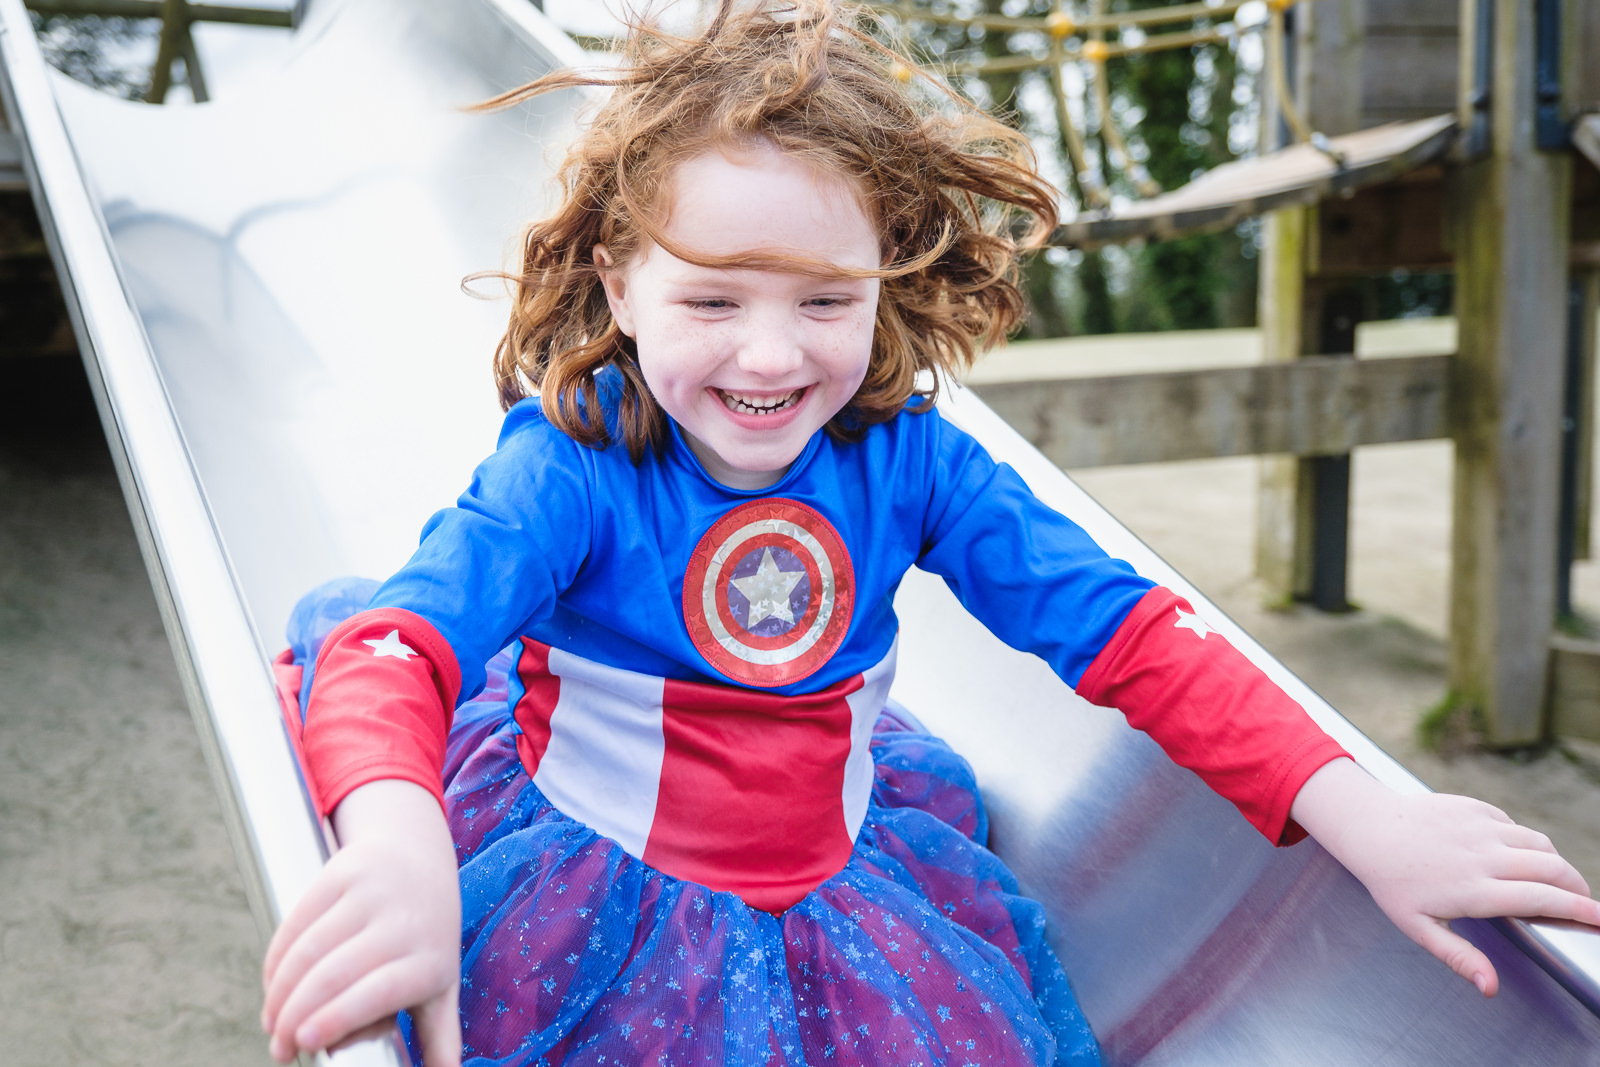 Girl dressed as a superhero going down a slide